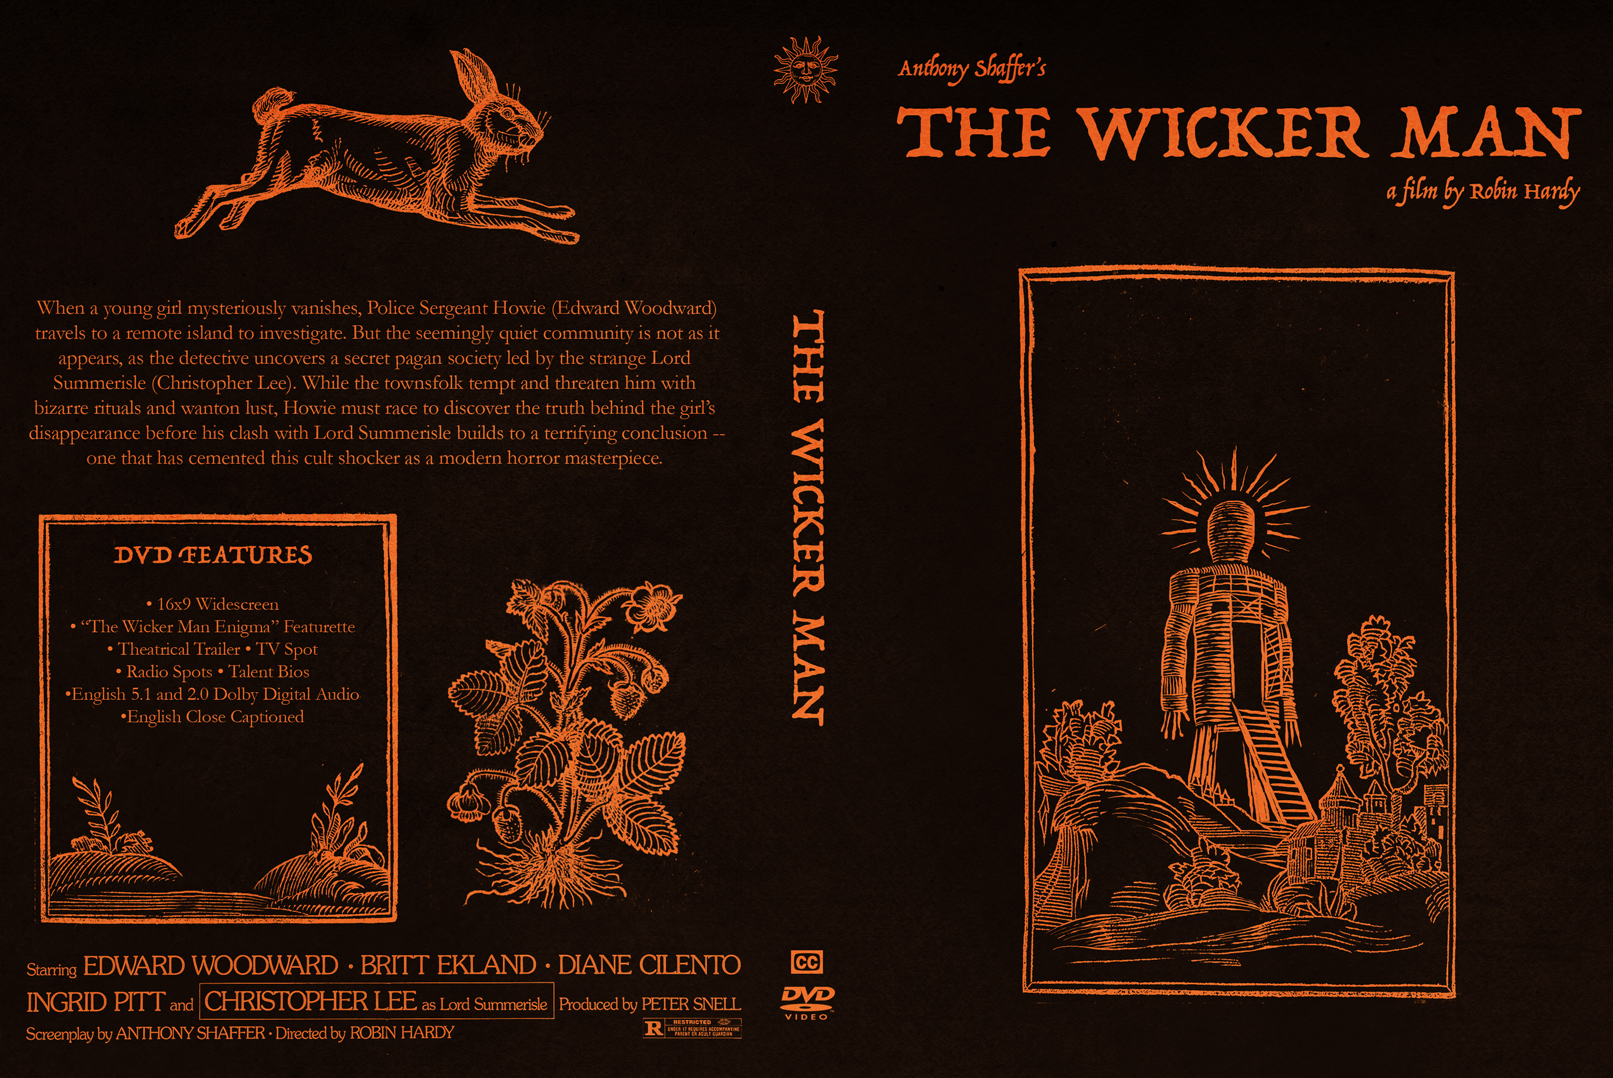 wickerman_cover.jpg